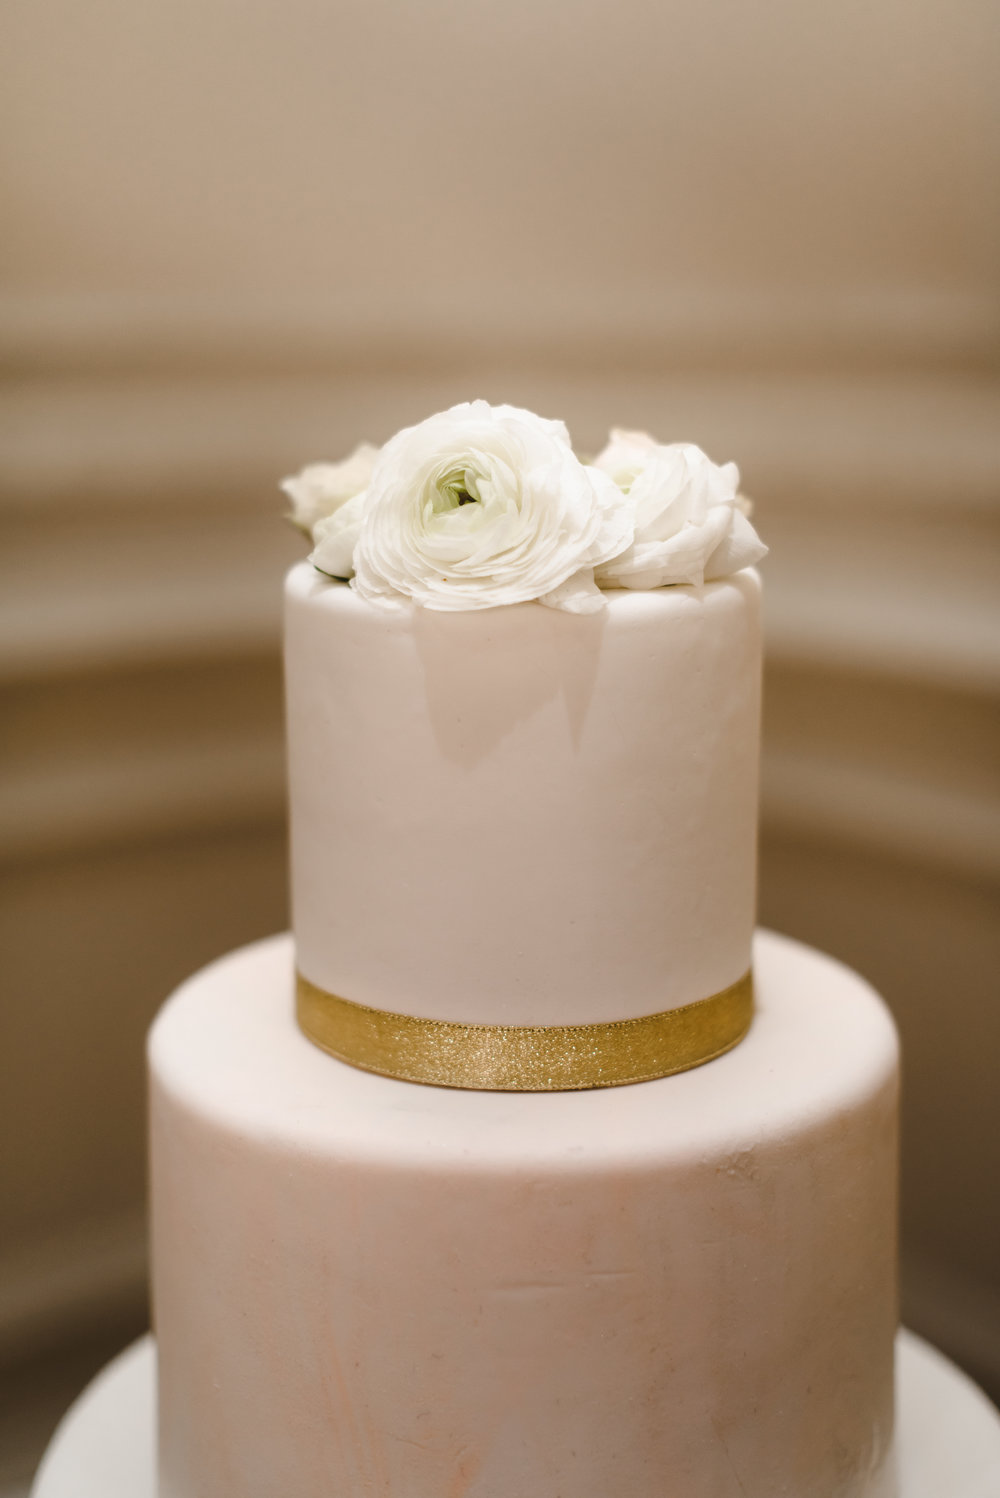 simple blush and white wedding cake #lrqcfloral #cakeflorals.jpg